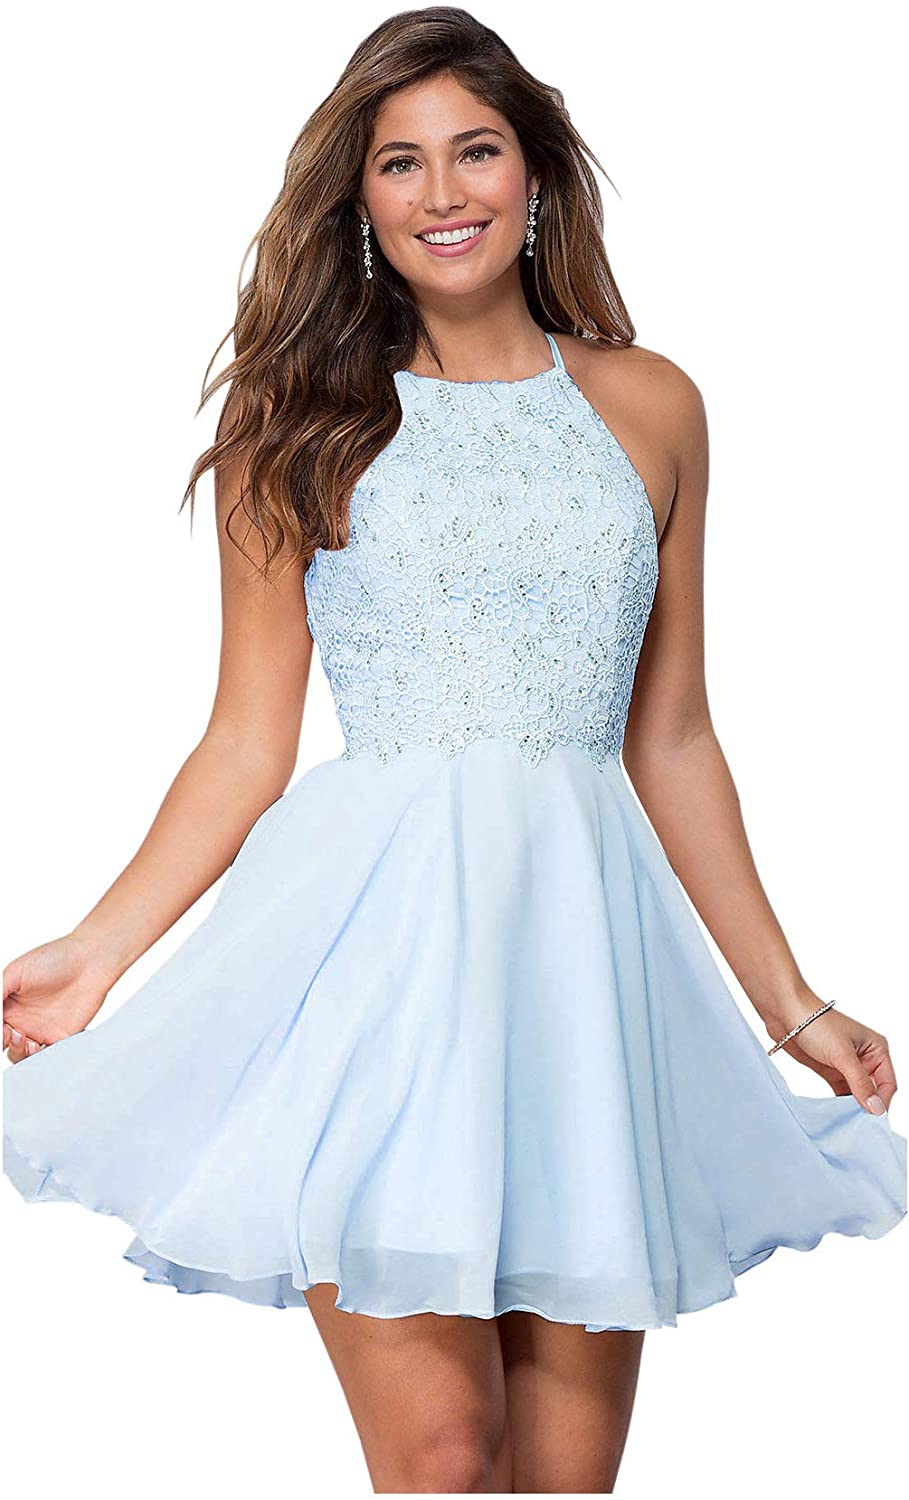 Beaded Lace Homecoming Dress Short Prom